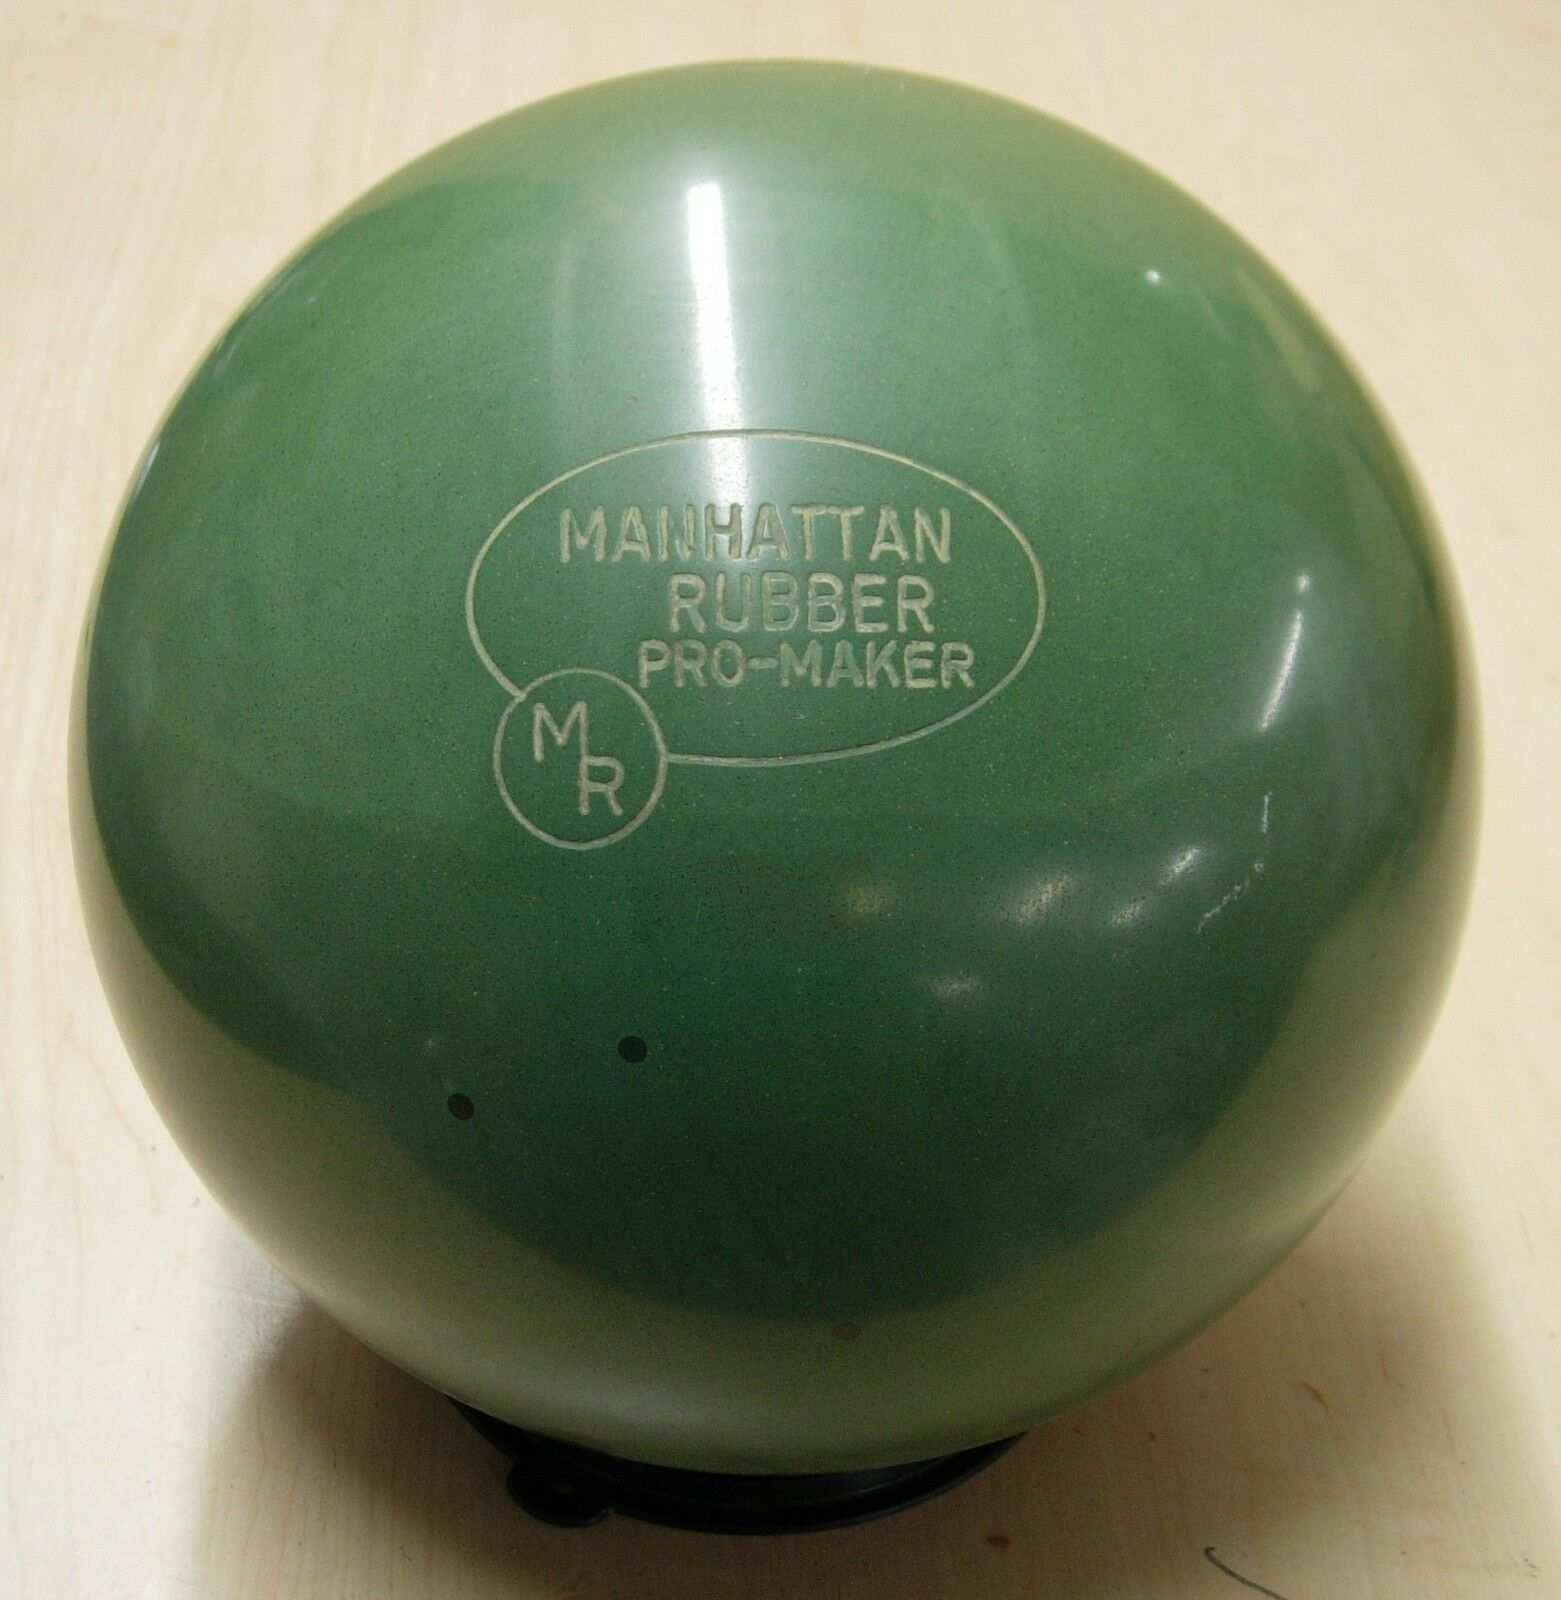 16golden Goodie  Manhattan Rubber 1982 PROMAKER Green Rubber, made by Ebonite